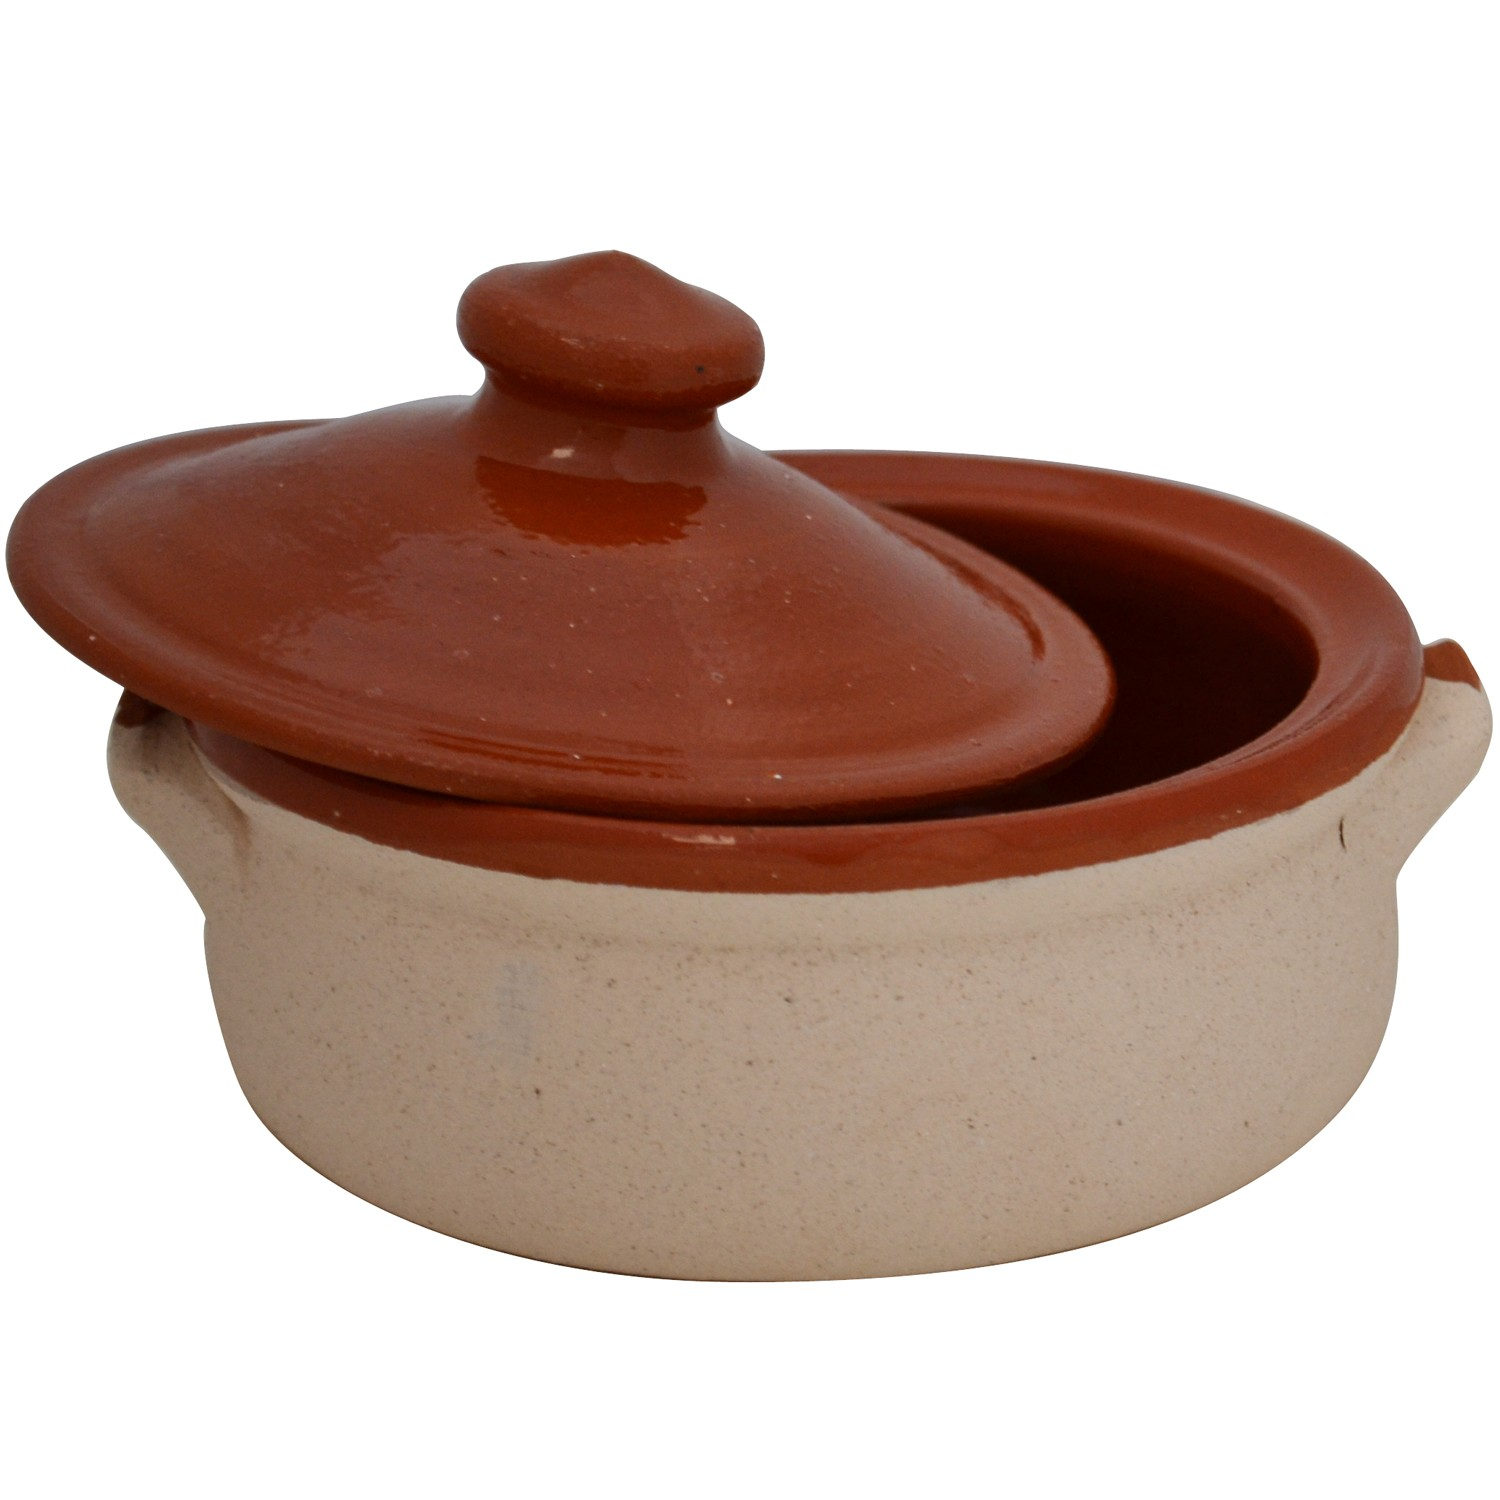 Handmade_Claypot_Sand_Coating-1